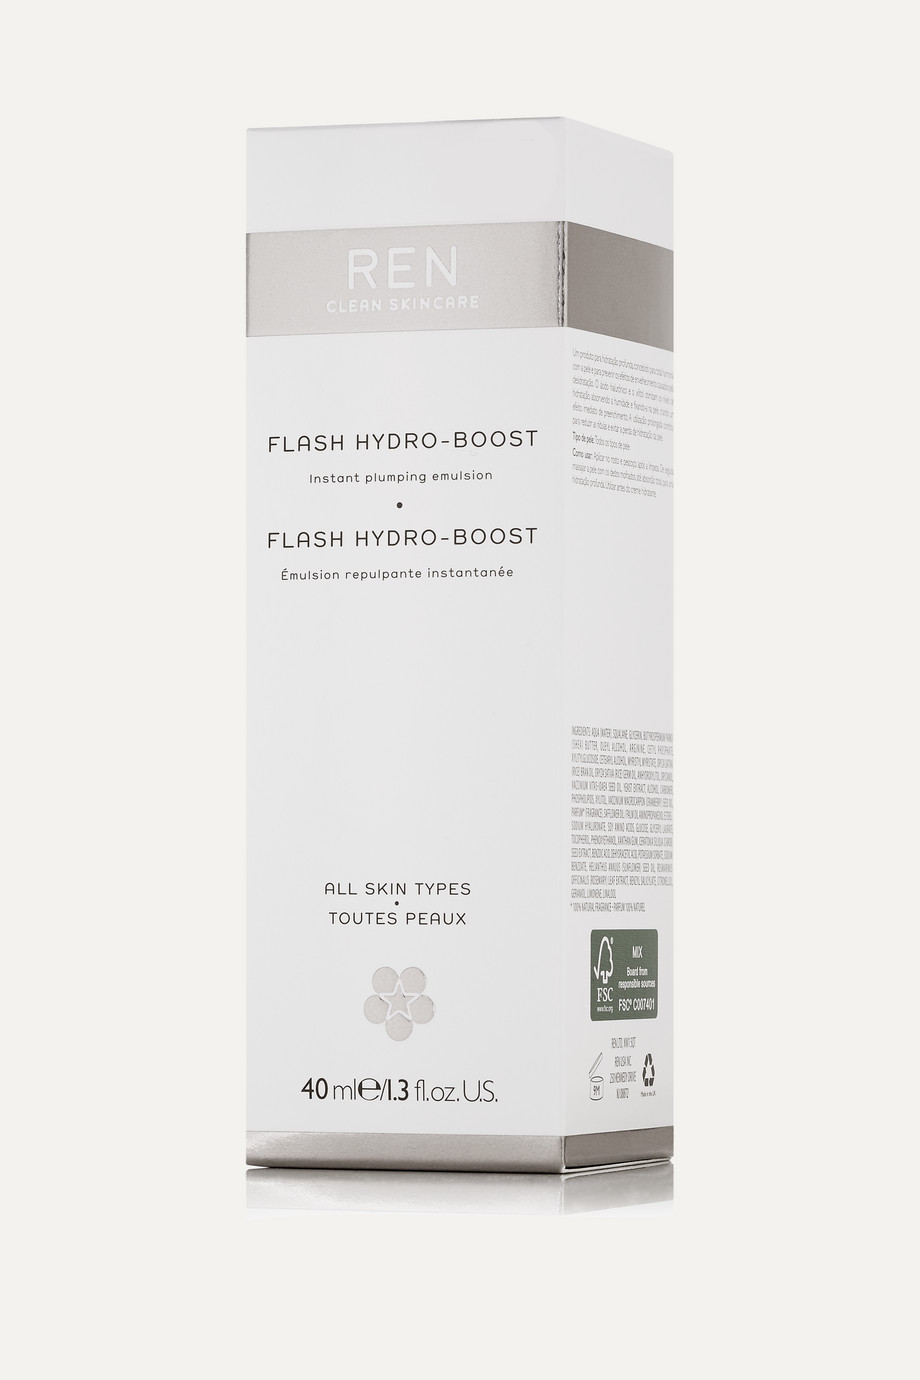 REN Clean Skincare Flash Hydro-Boost Instant Plumping Emulsion, 40ml